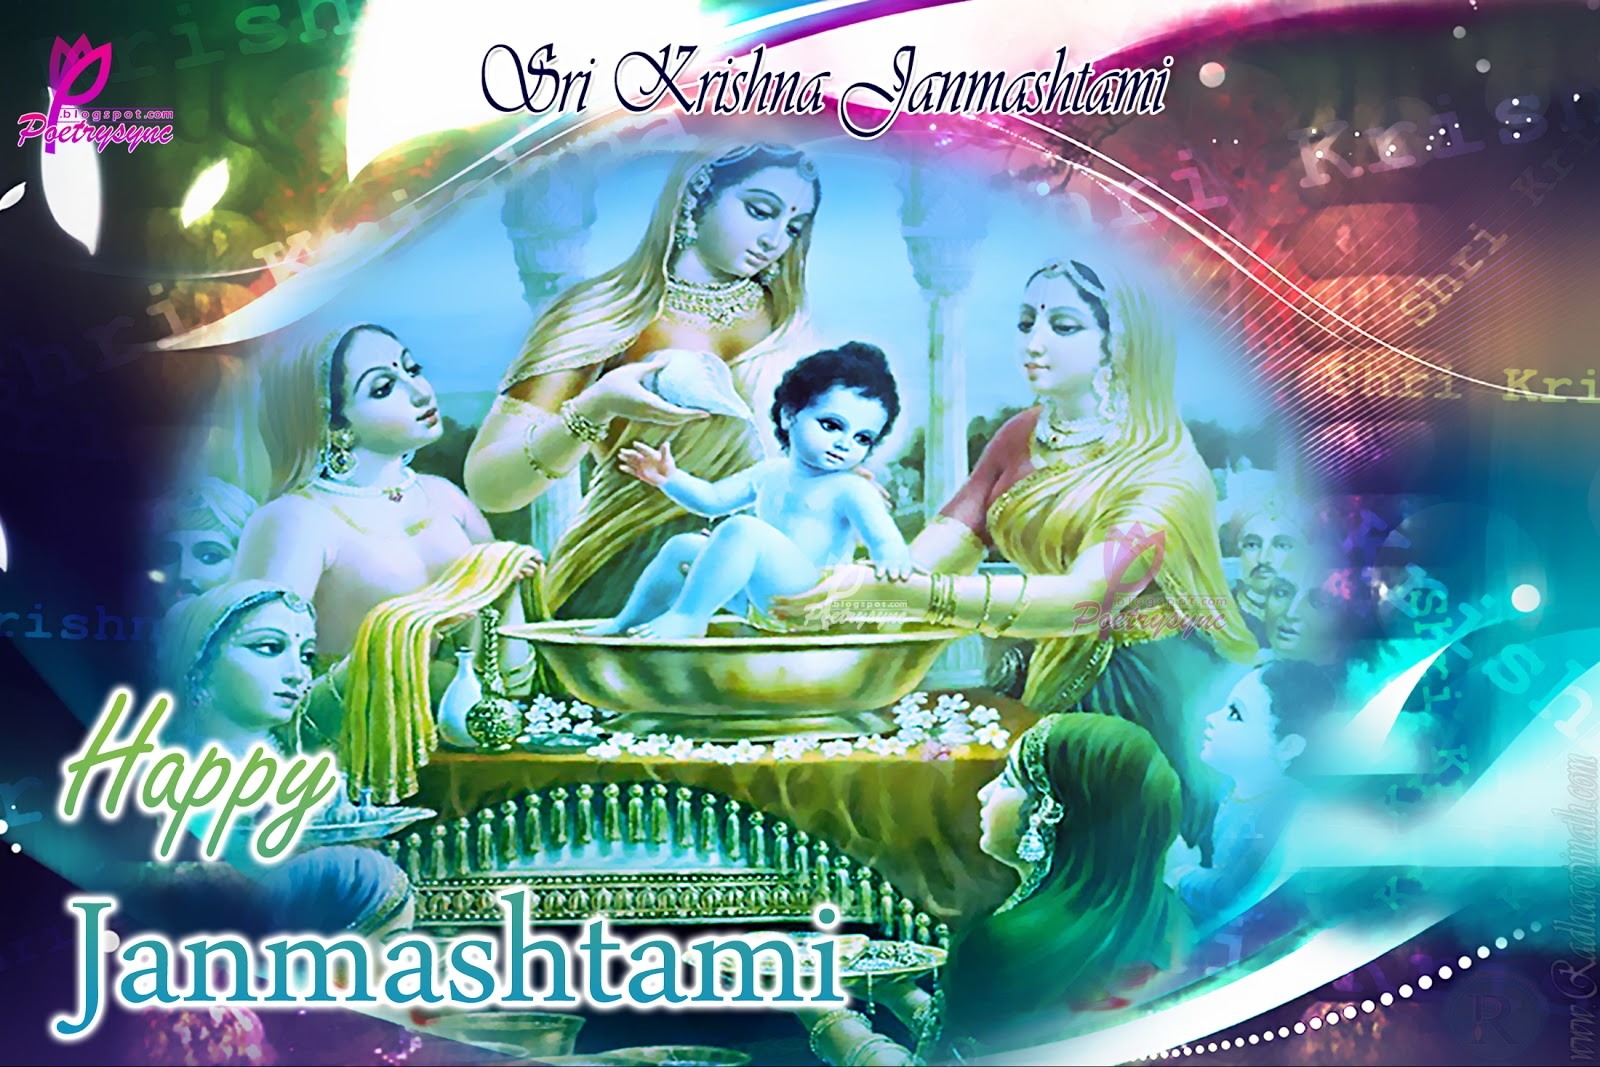 Krishna Janmashtami Image Hd 2017 The Galleries Of Hd Wallpaper